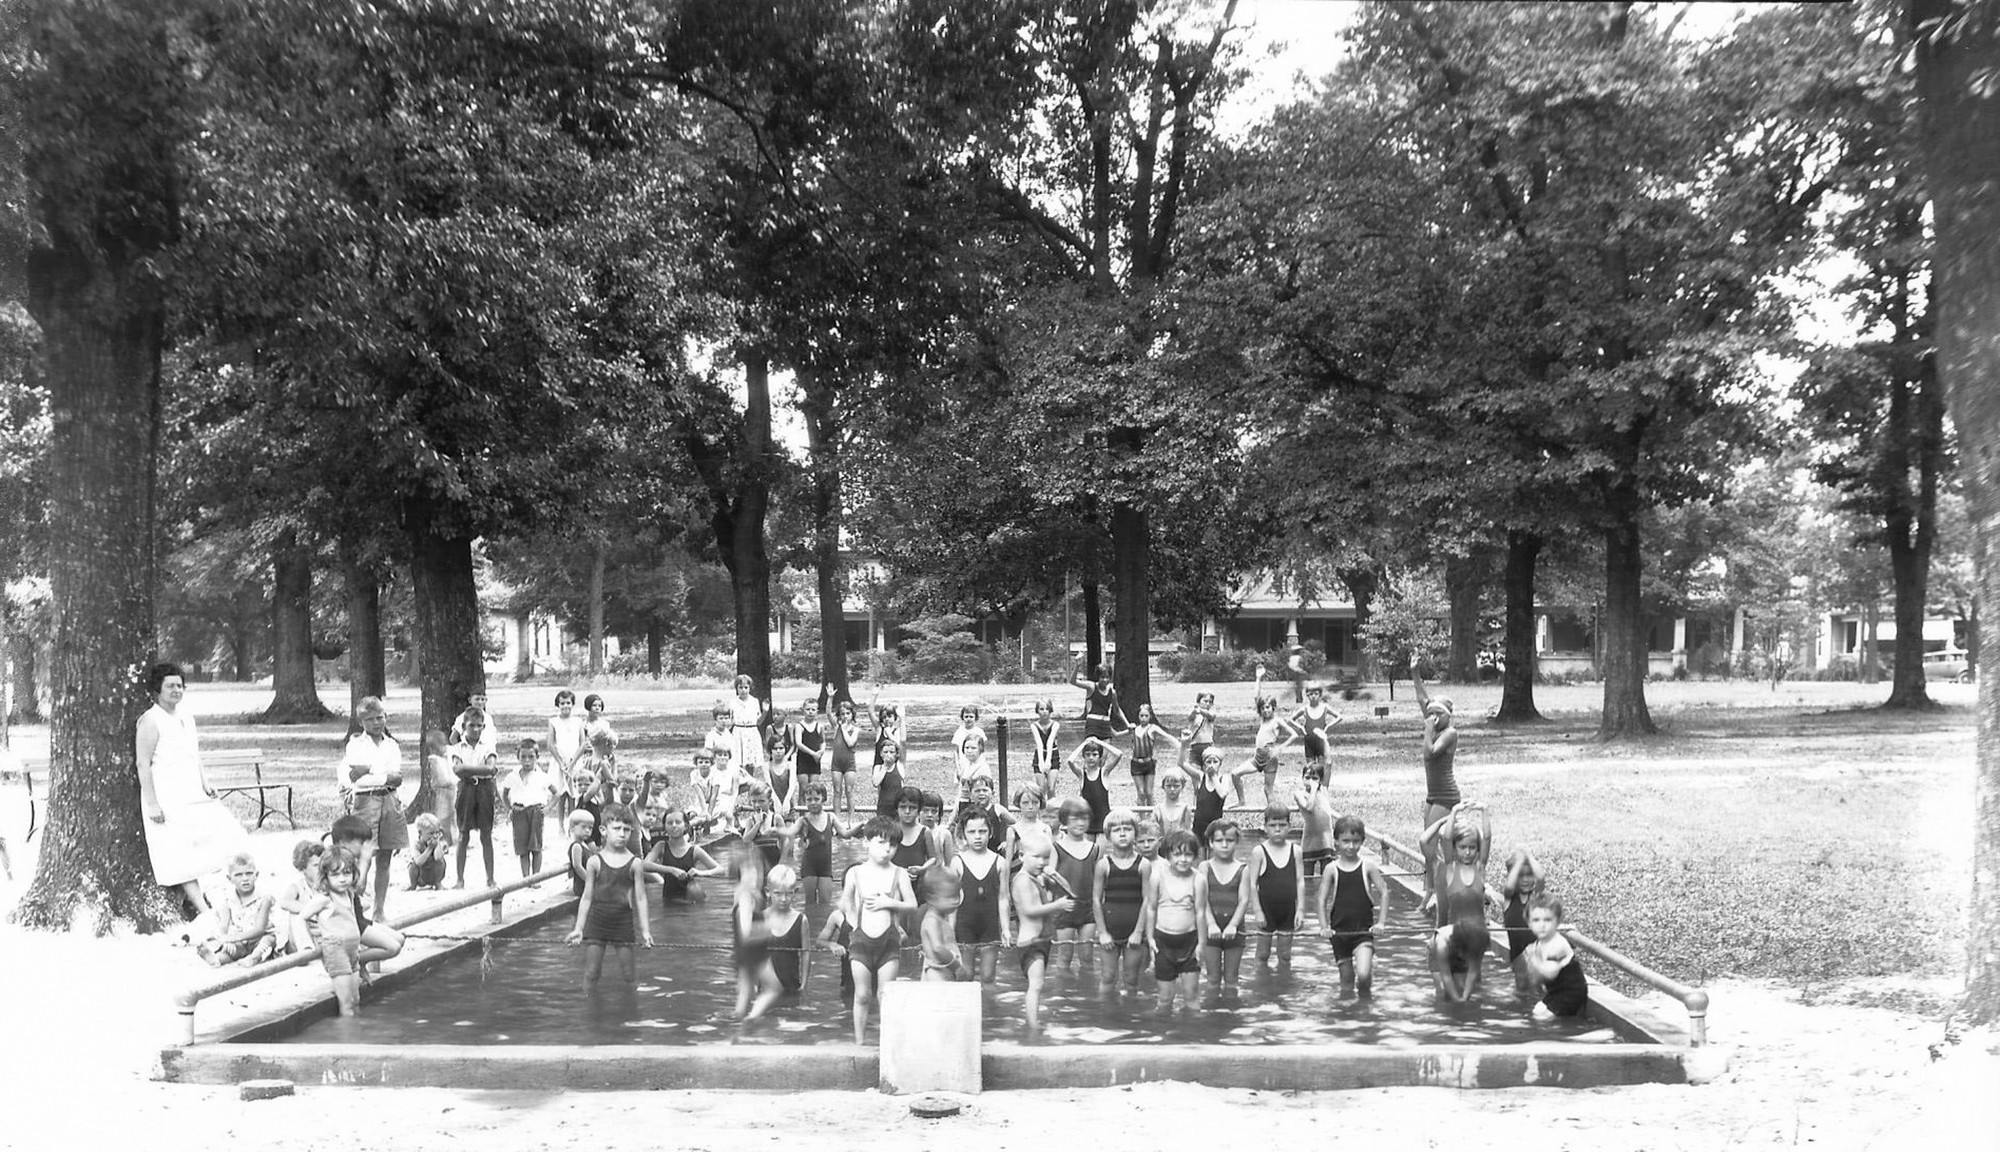 Children play in Memorial Park's wading pool in the 1940s.